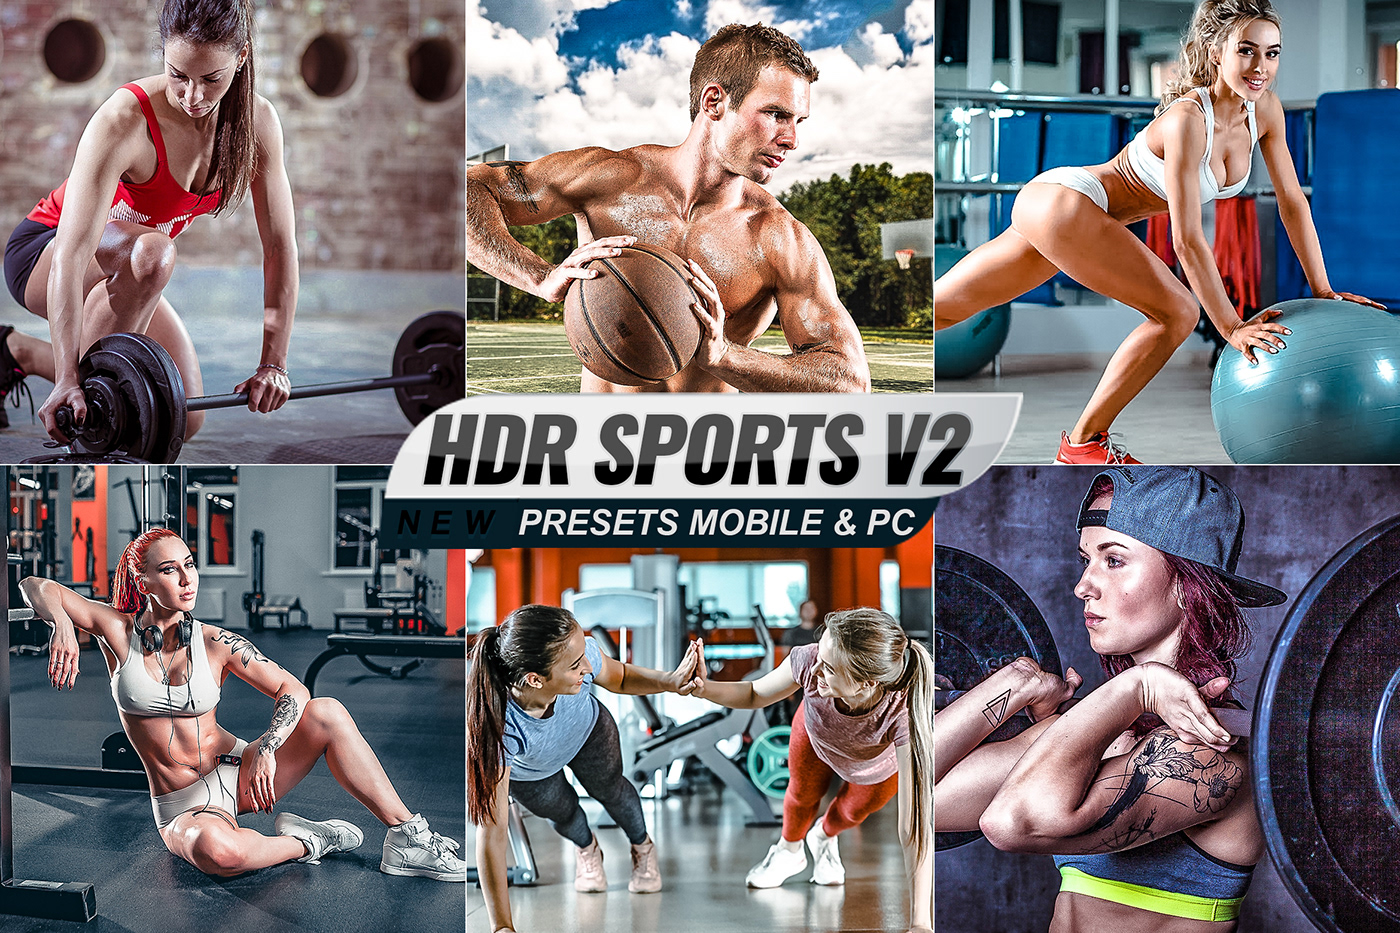 Fashion  fitness HDR HDR presets hdr sports mobile portrait sports